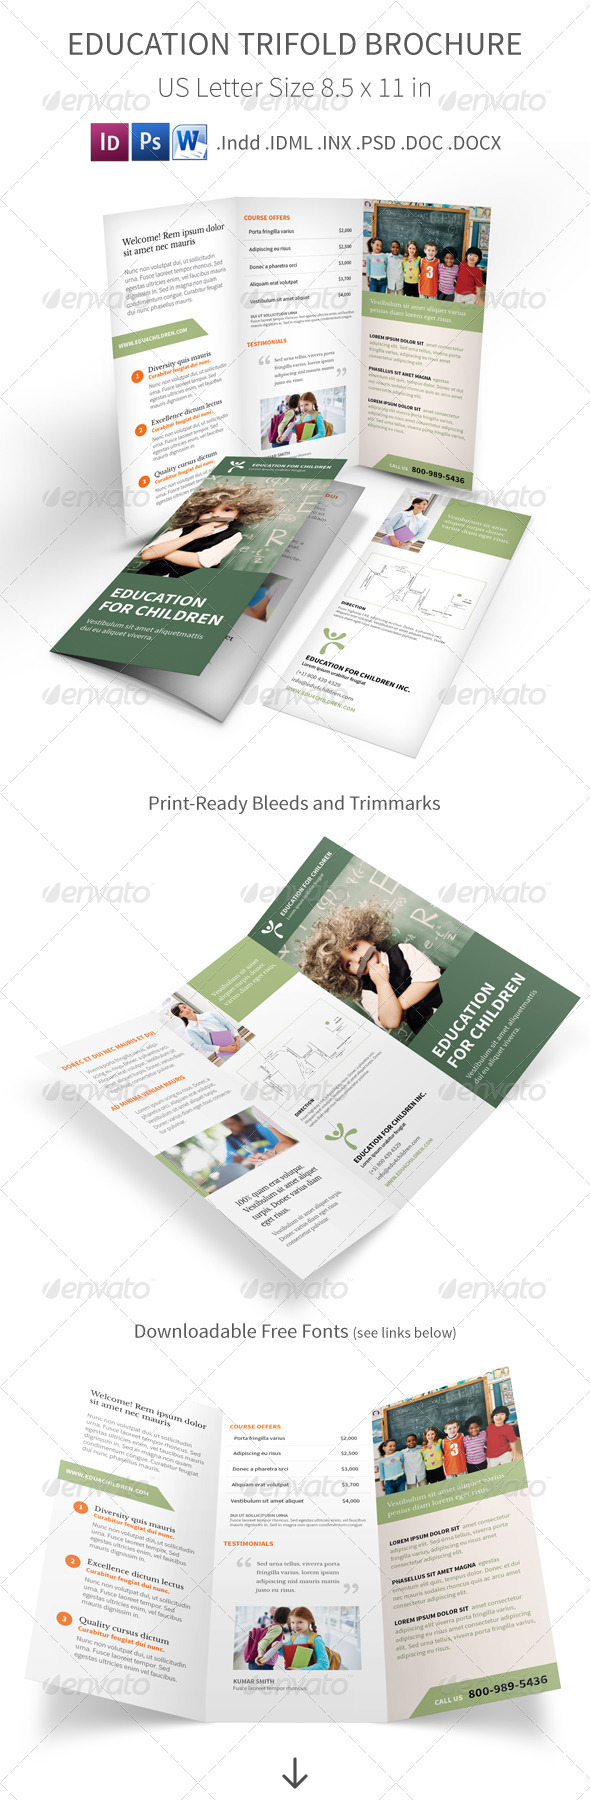 GraphicRiver Education Trifold Brochure 7795601